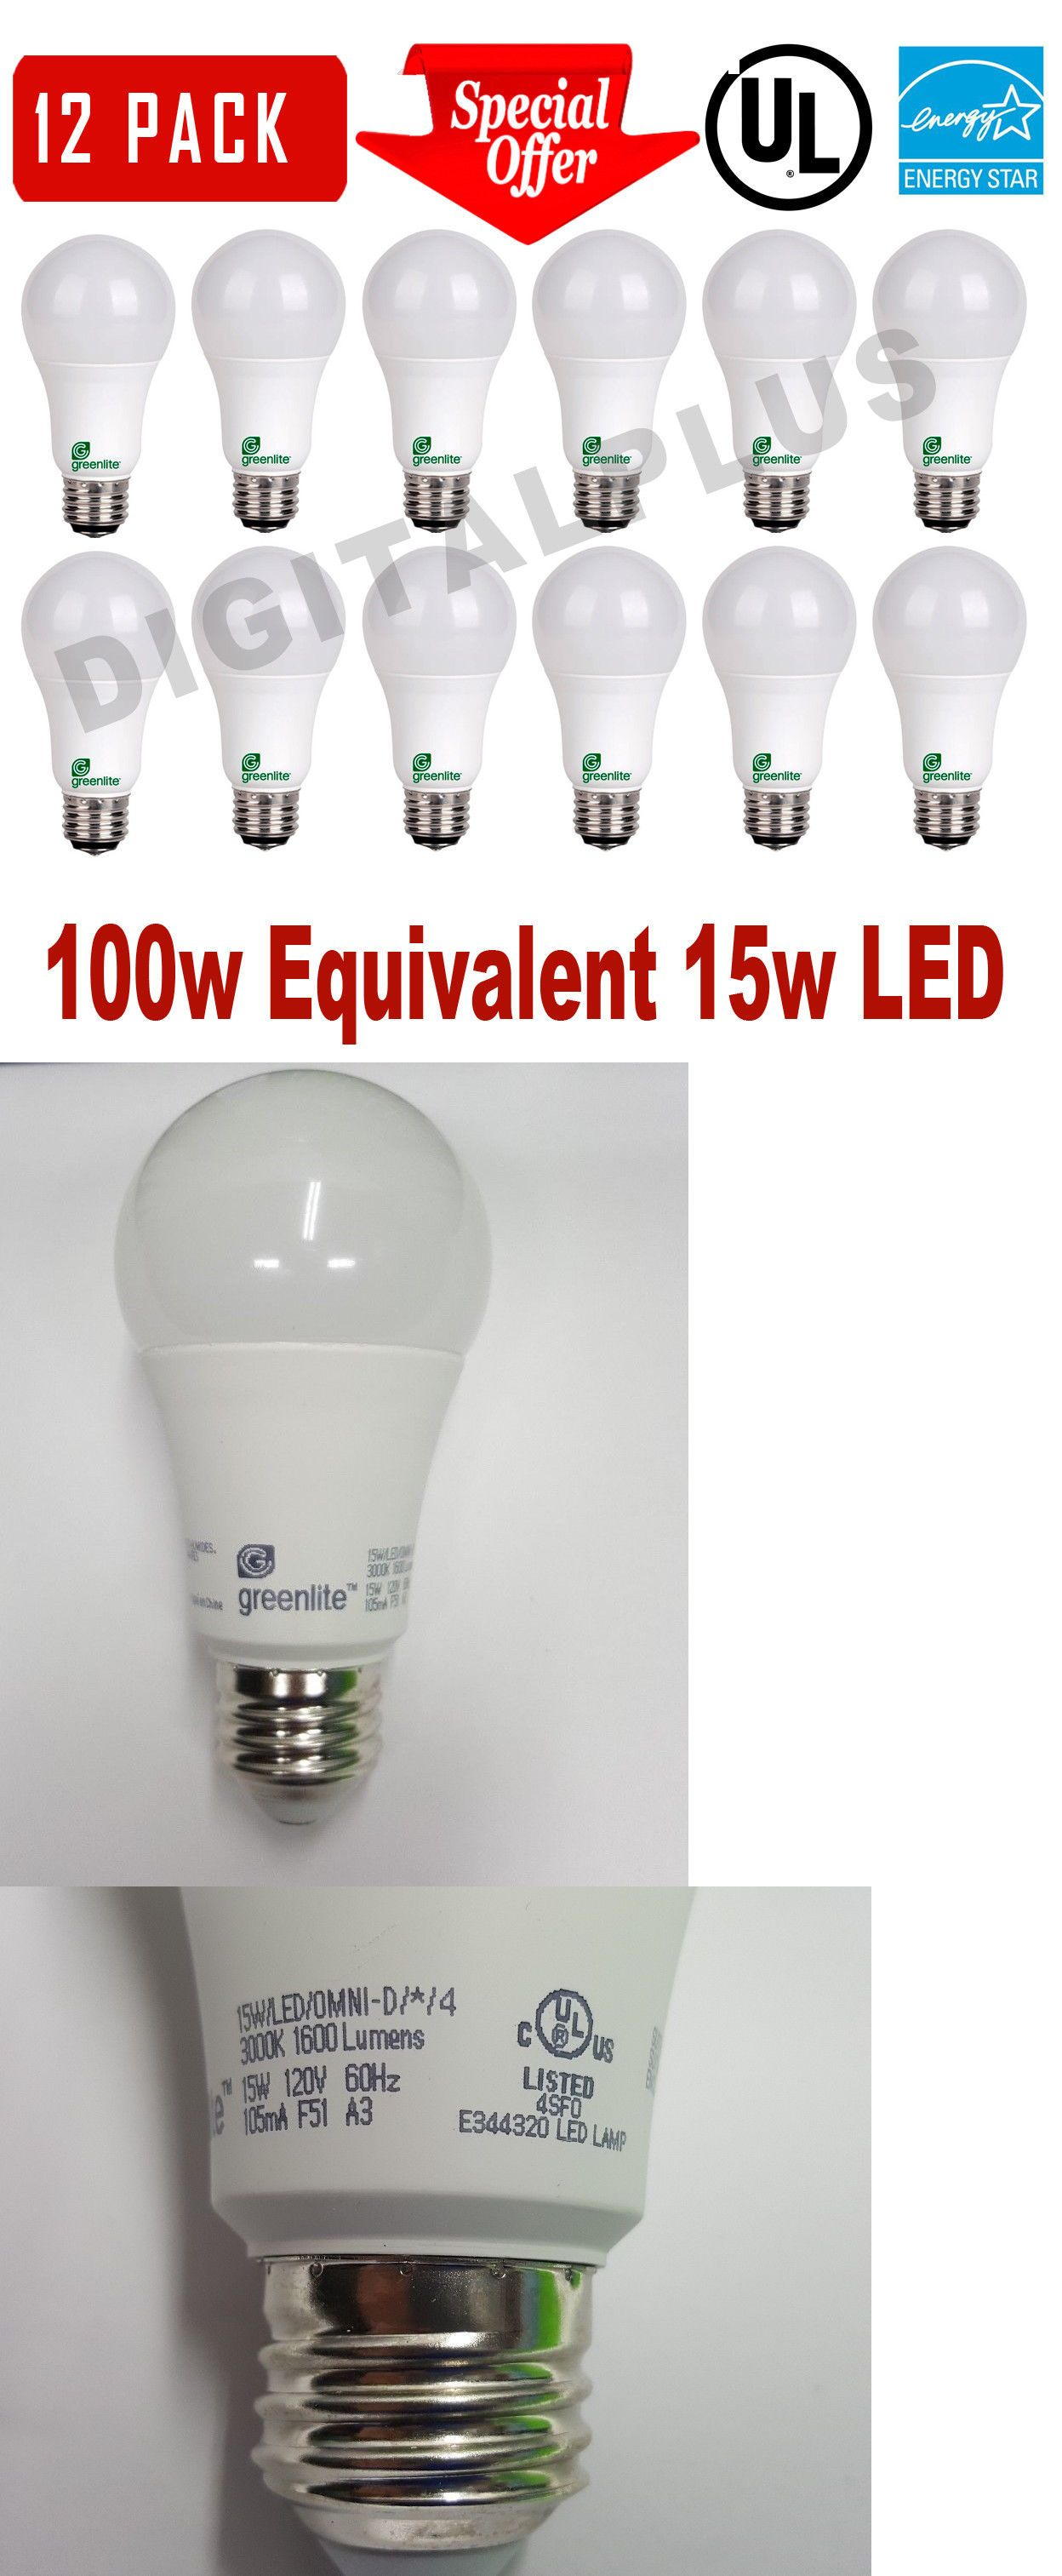 Light Bulbs 20706 12 Led Light Bulbs Greenlite 15w 100w Rep 1600l Warm White 3000k A19 Dimmable Buy It Now Only 29 9 On Led Light Bulbs Light Bulbs Bulb